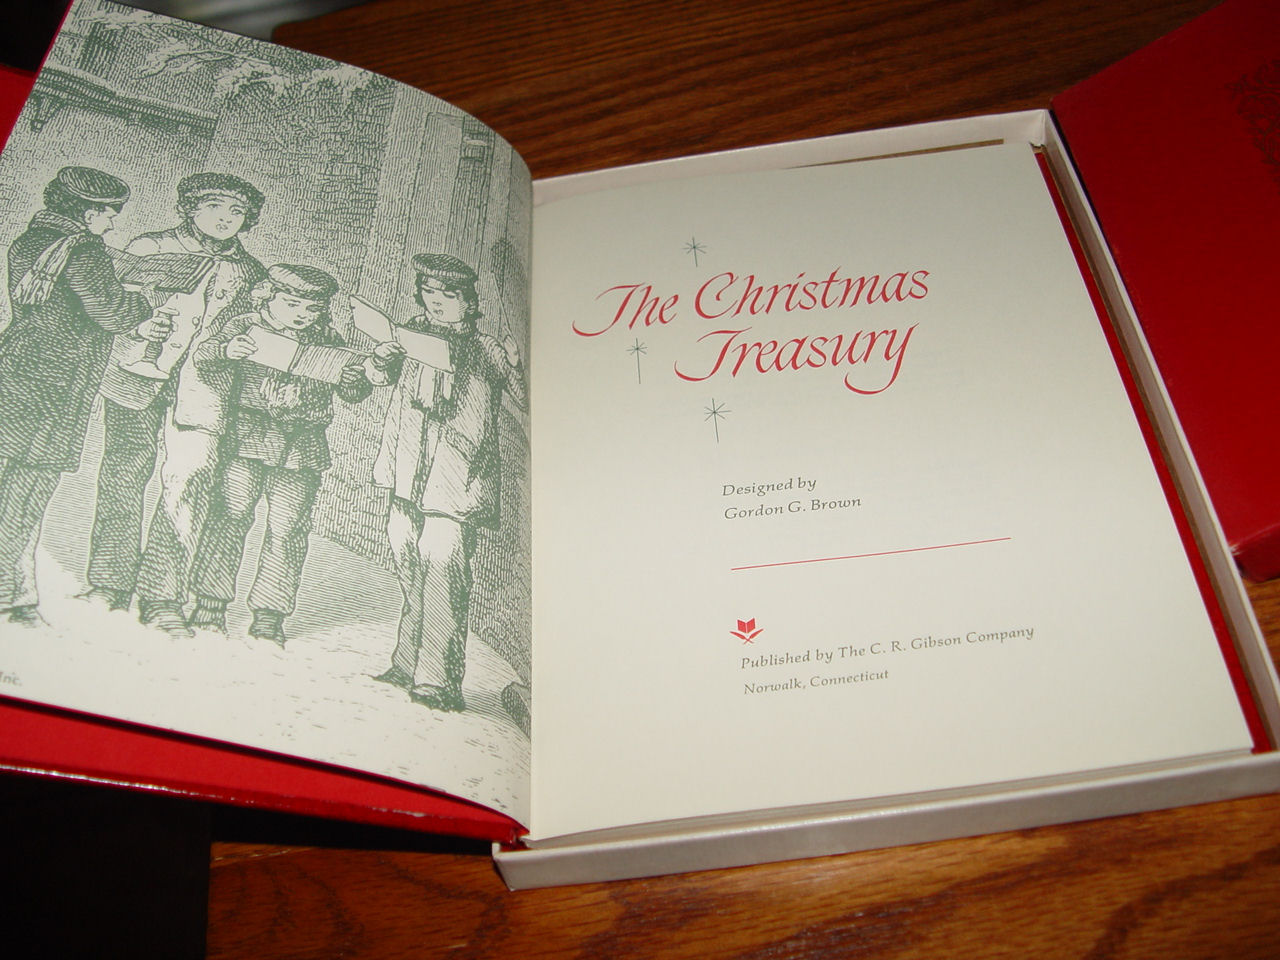 The Christmas                                         treasury, Gordon Brown ;                                         Published by C. R. Gibson Co,                                         1969 Norwalk, CT